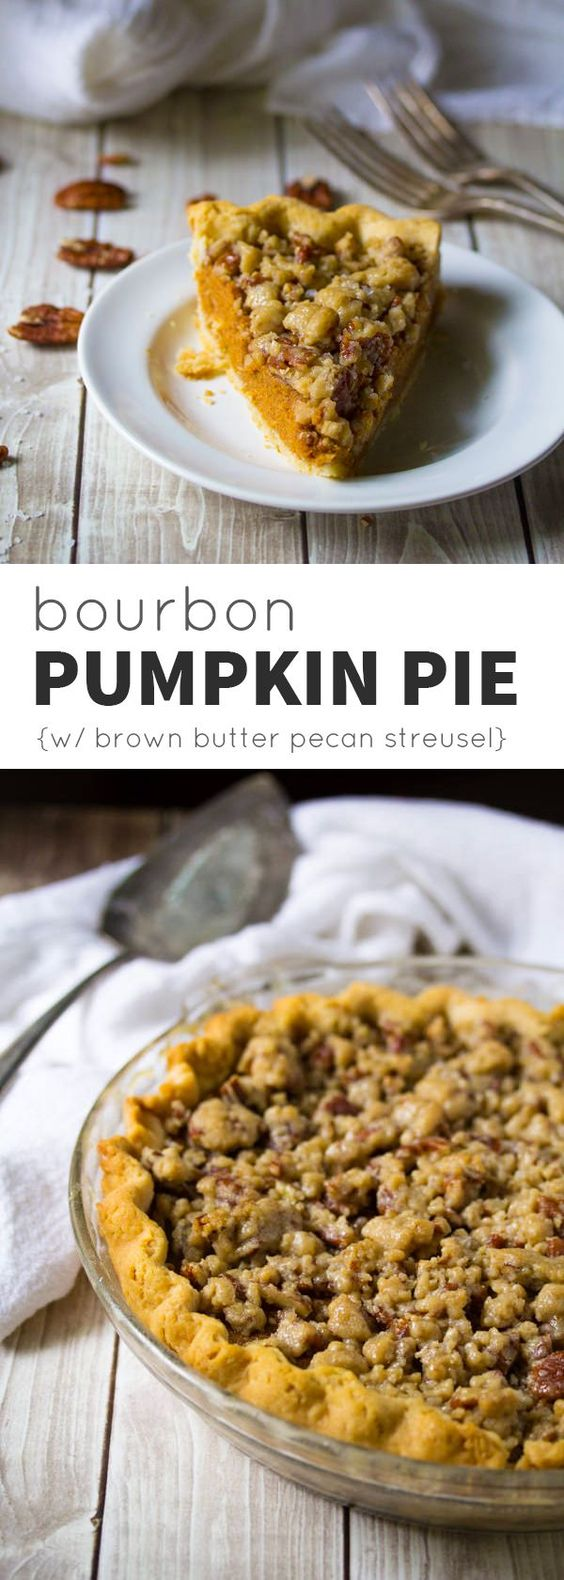 Bourbon Pumpkin Pie with a Salted Brown Butter Pecan Streusel | Recipe ...